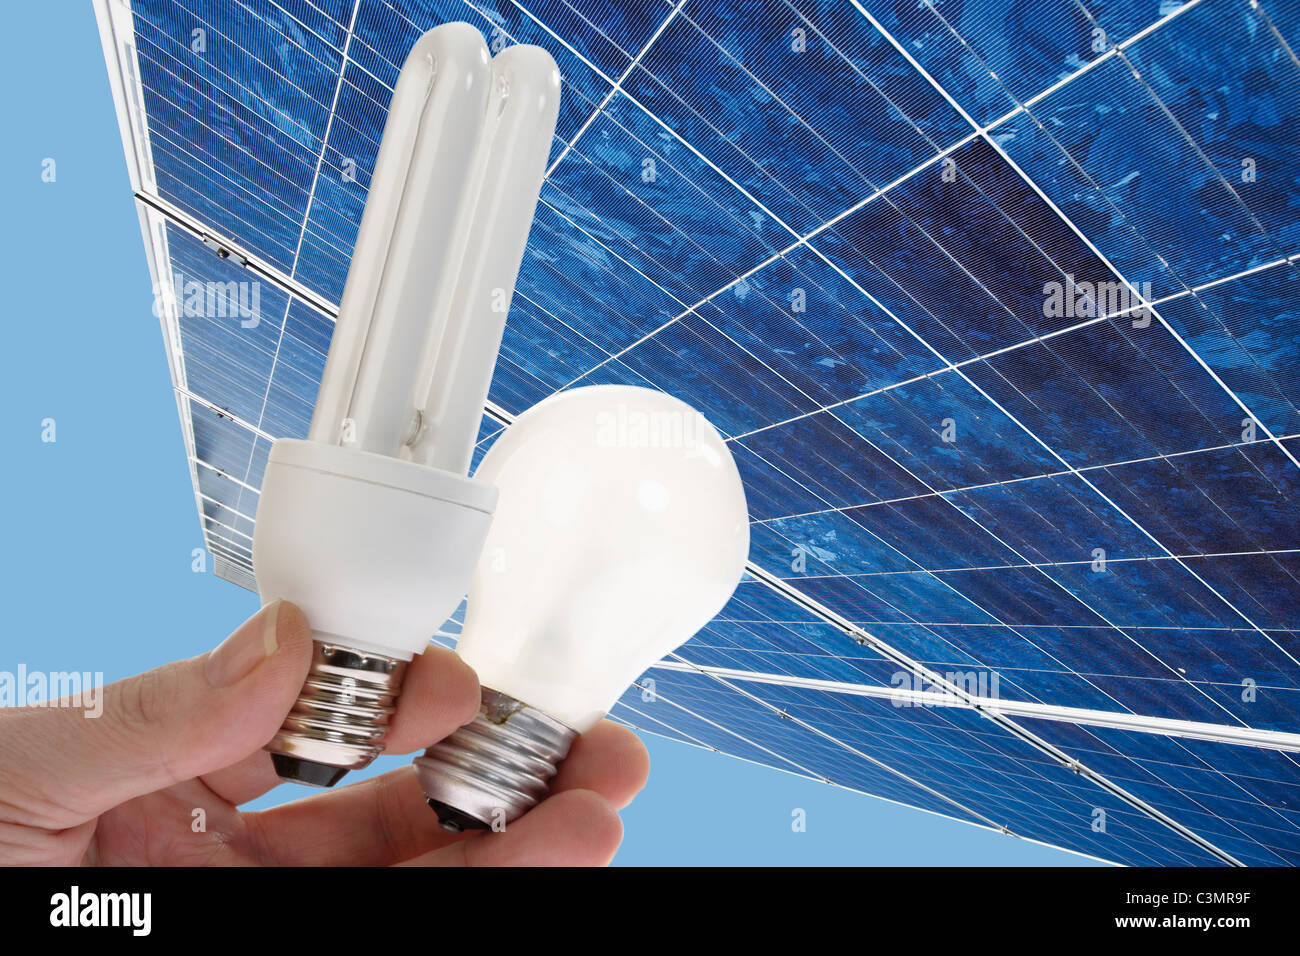 Human hand holding energy saving light, ampoule contre panneau solaire, Close up. Photo Stock